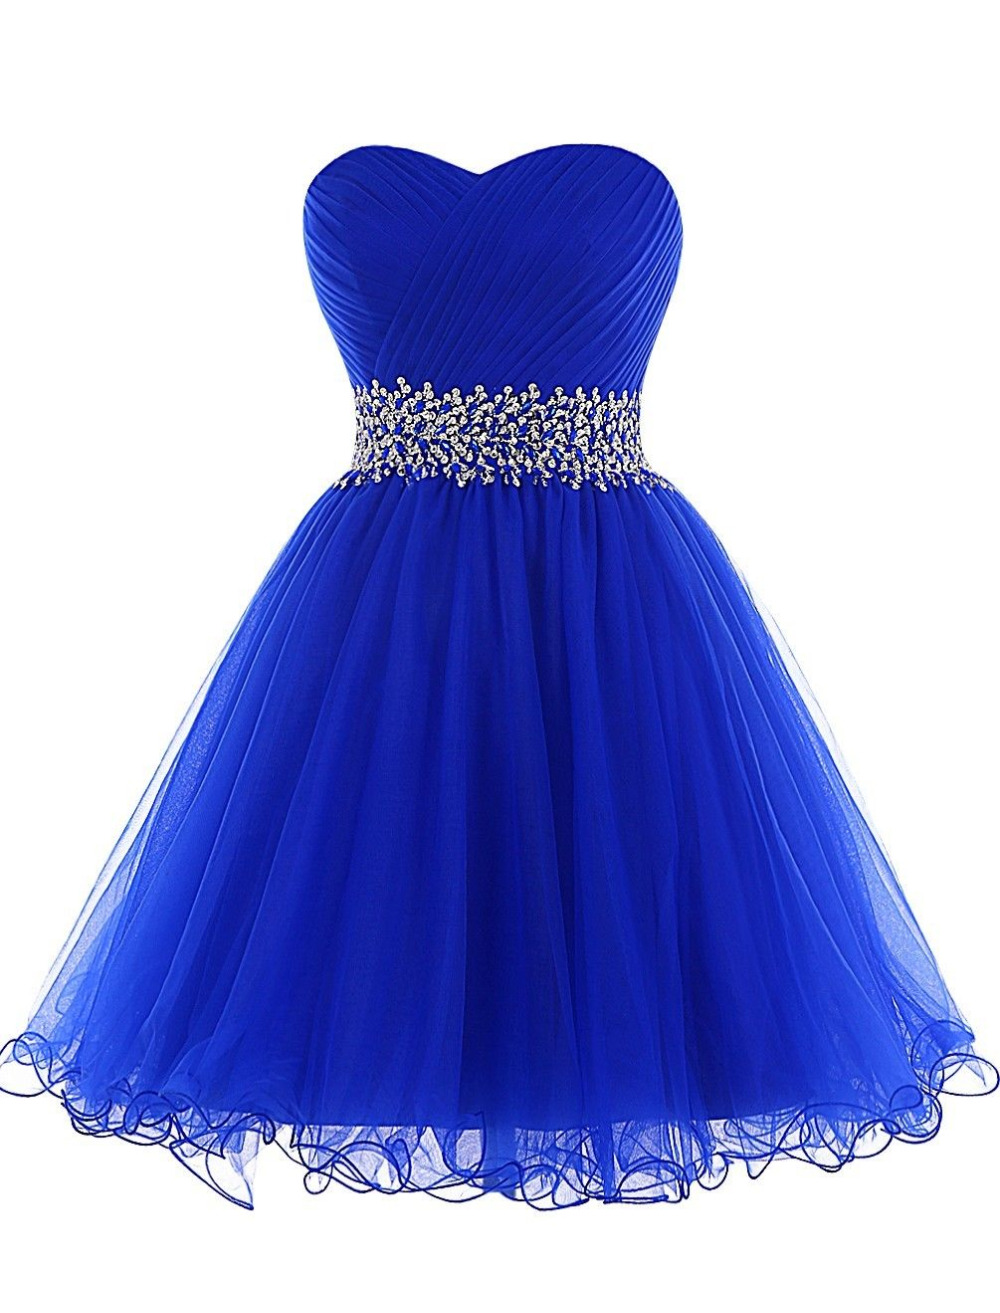 Buy Cheap Royal Blue Sequined Short Prom Dress Sexy Formal Party Gown Beading Mint Green Prom Dresses Blacke Elegant vestido de festa